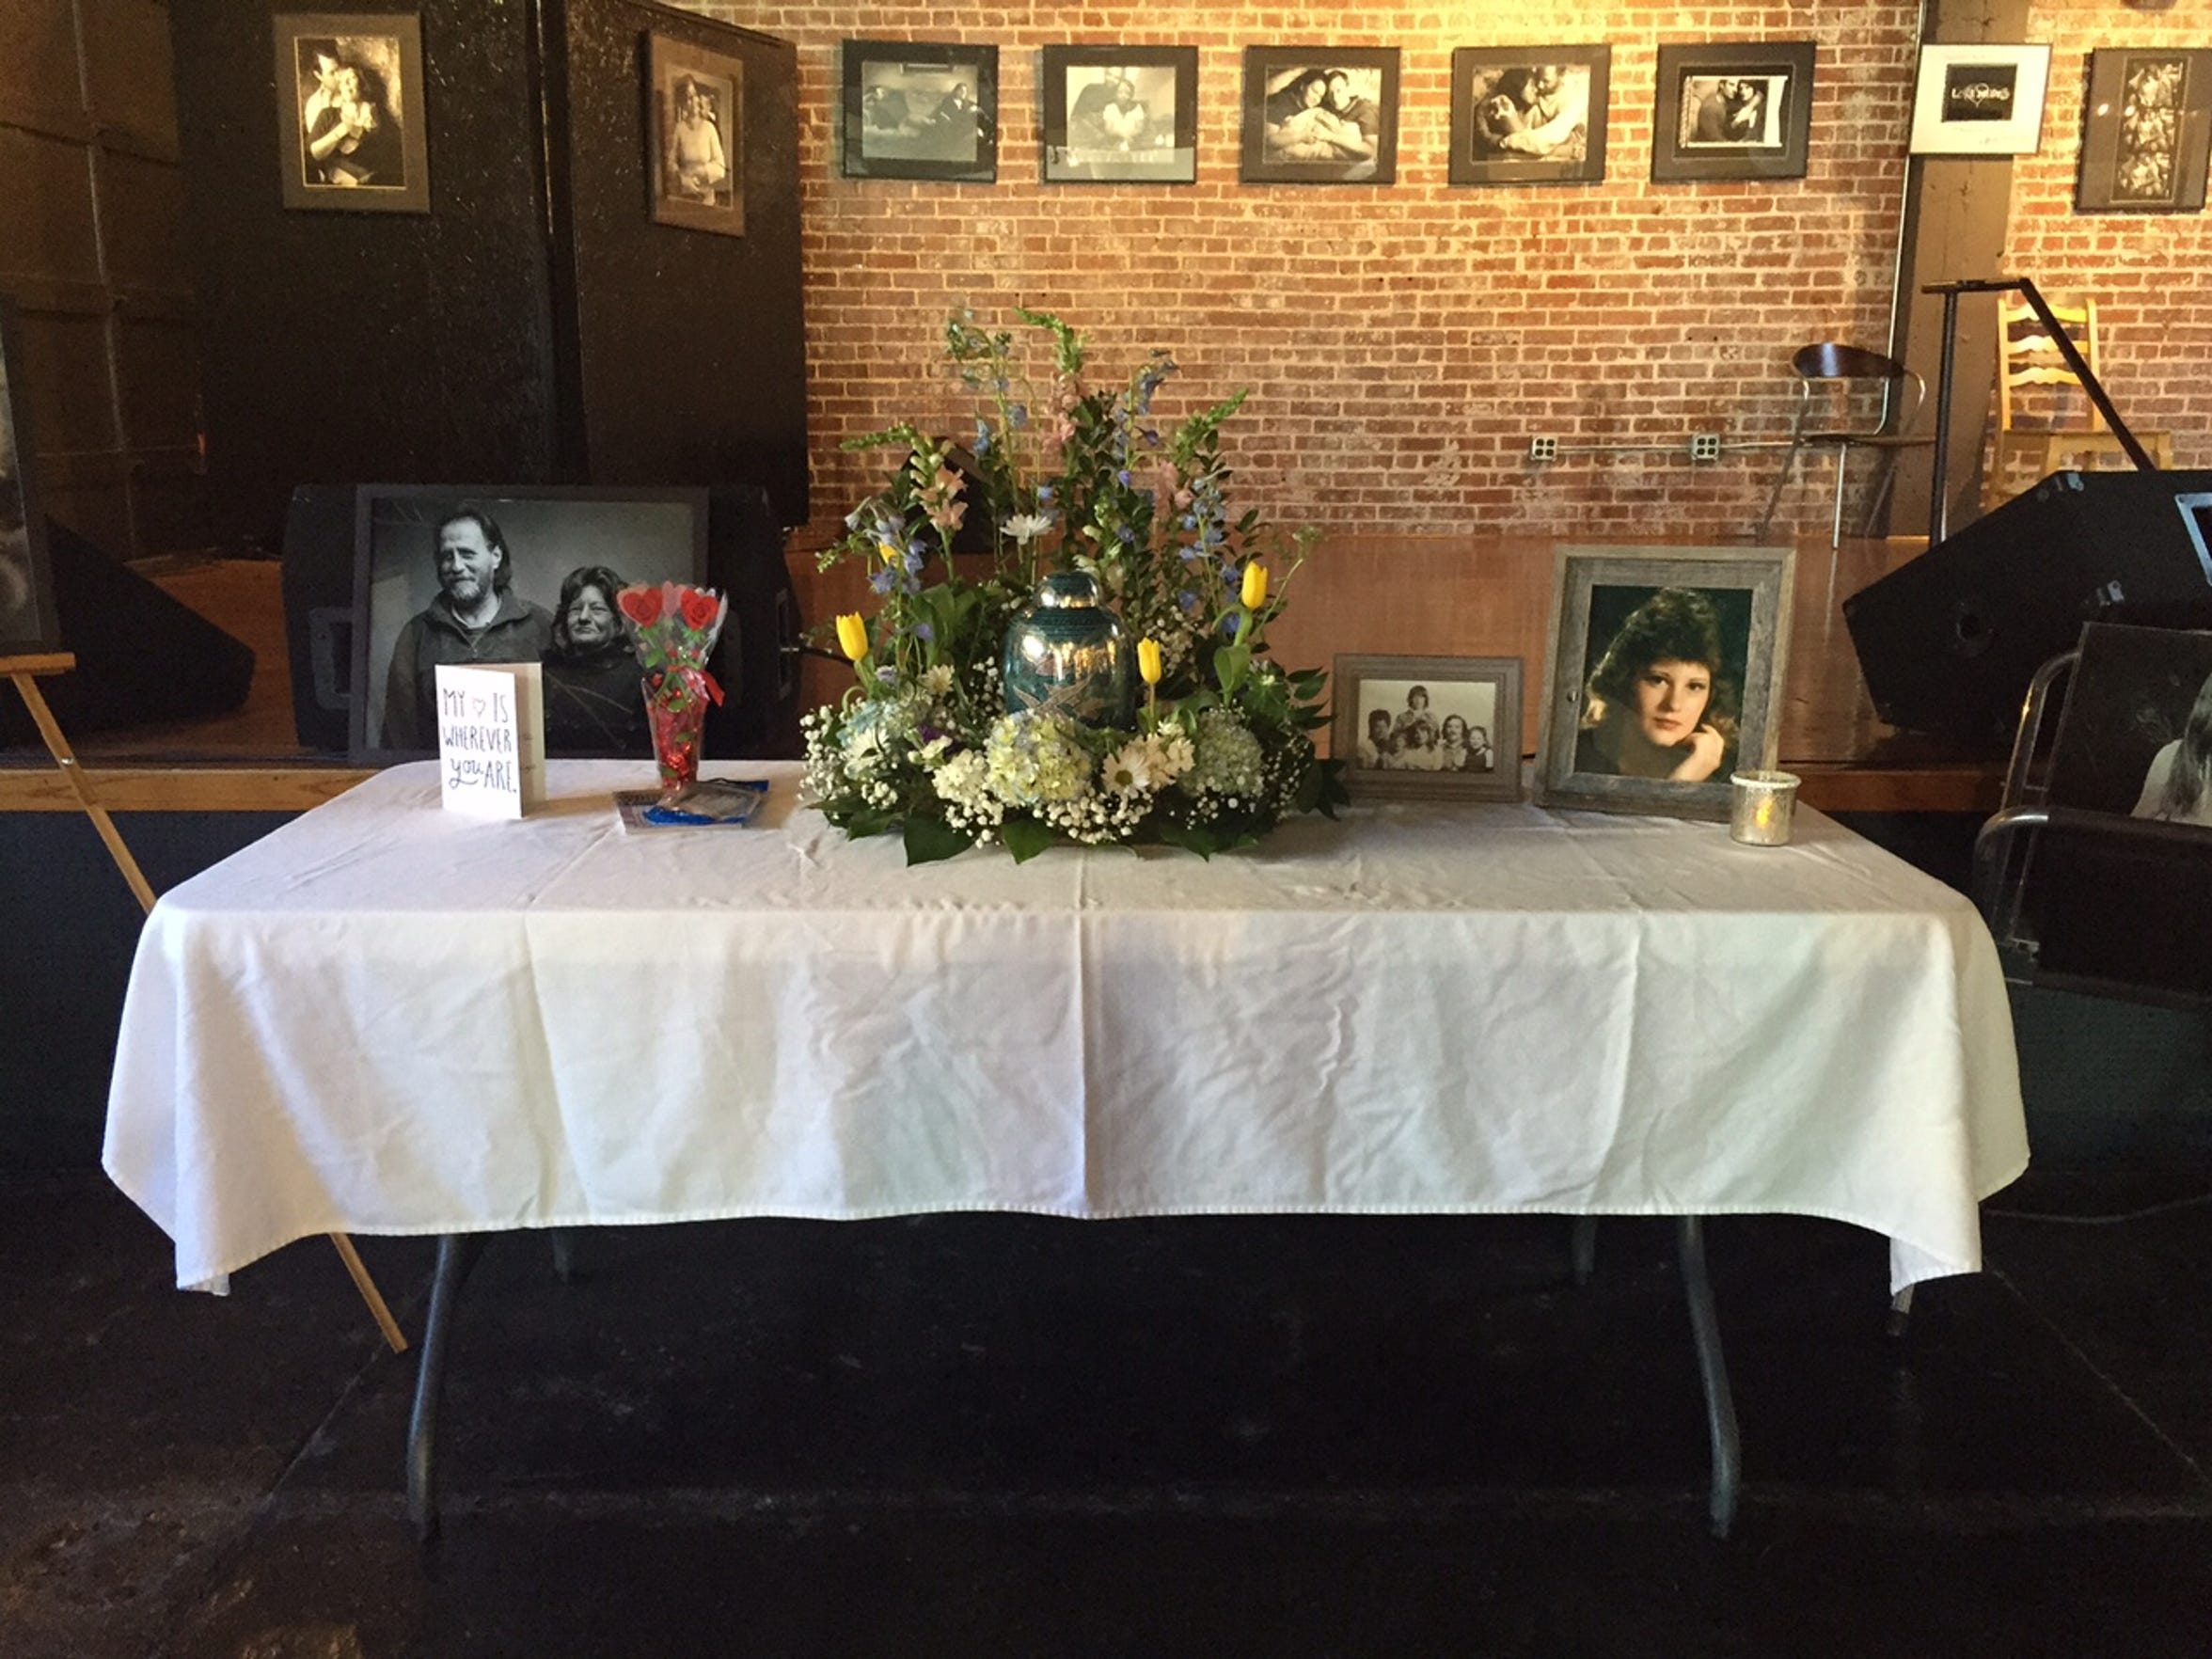 A memorial service for Petra Hensler was held March 5 at Randy Bacon Studio. In the center of the table sits an urn with her ashes.